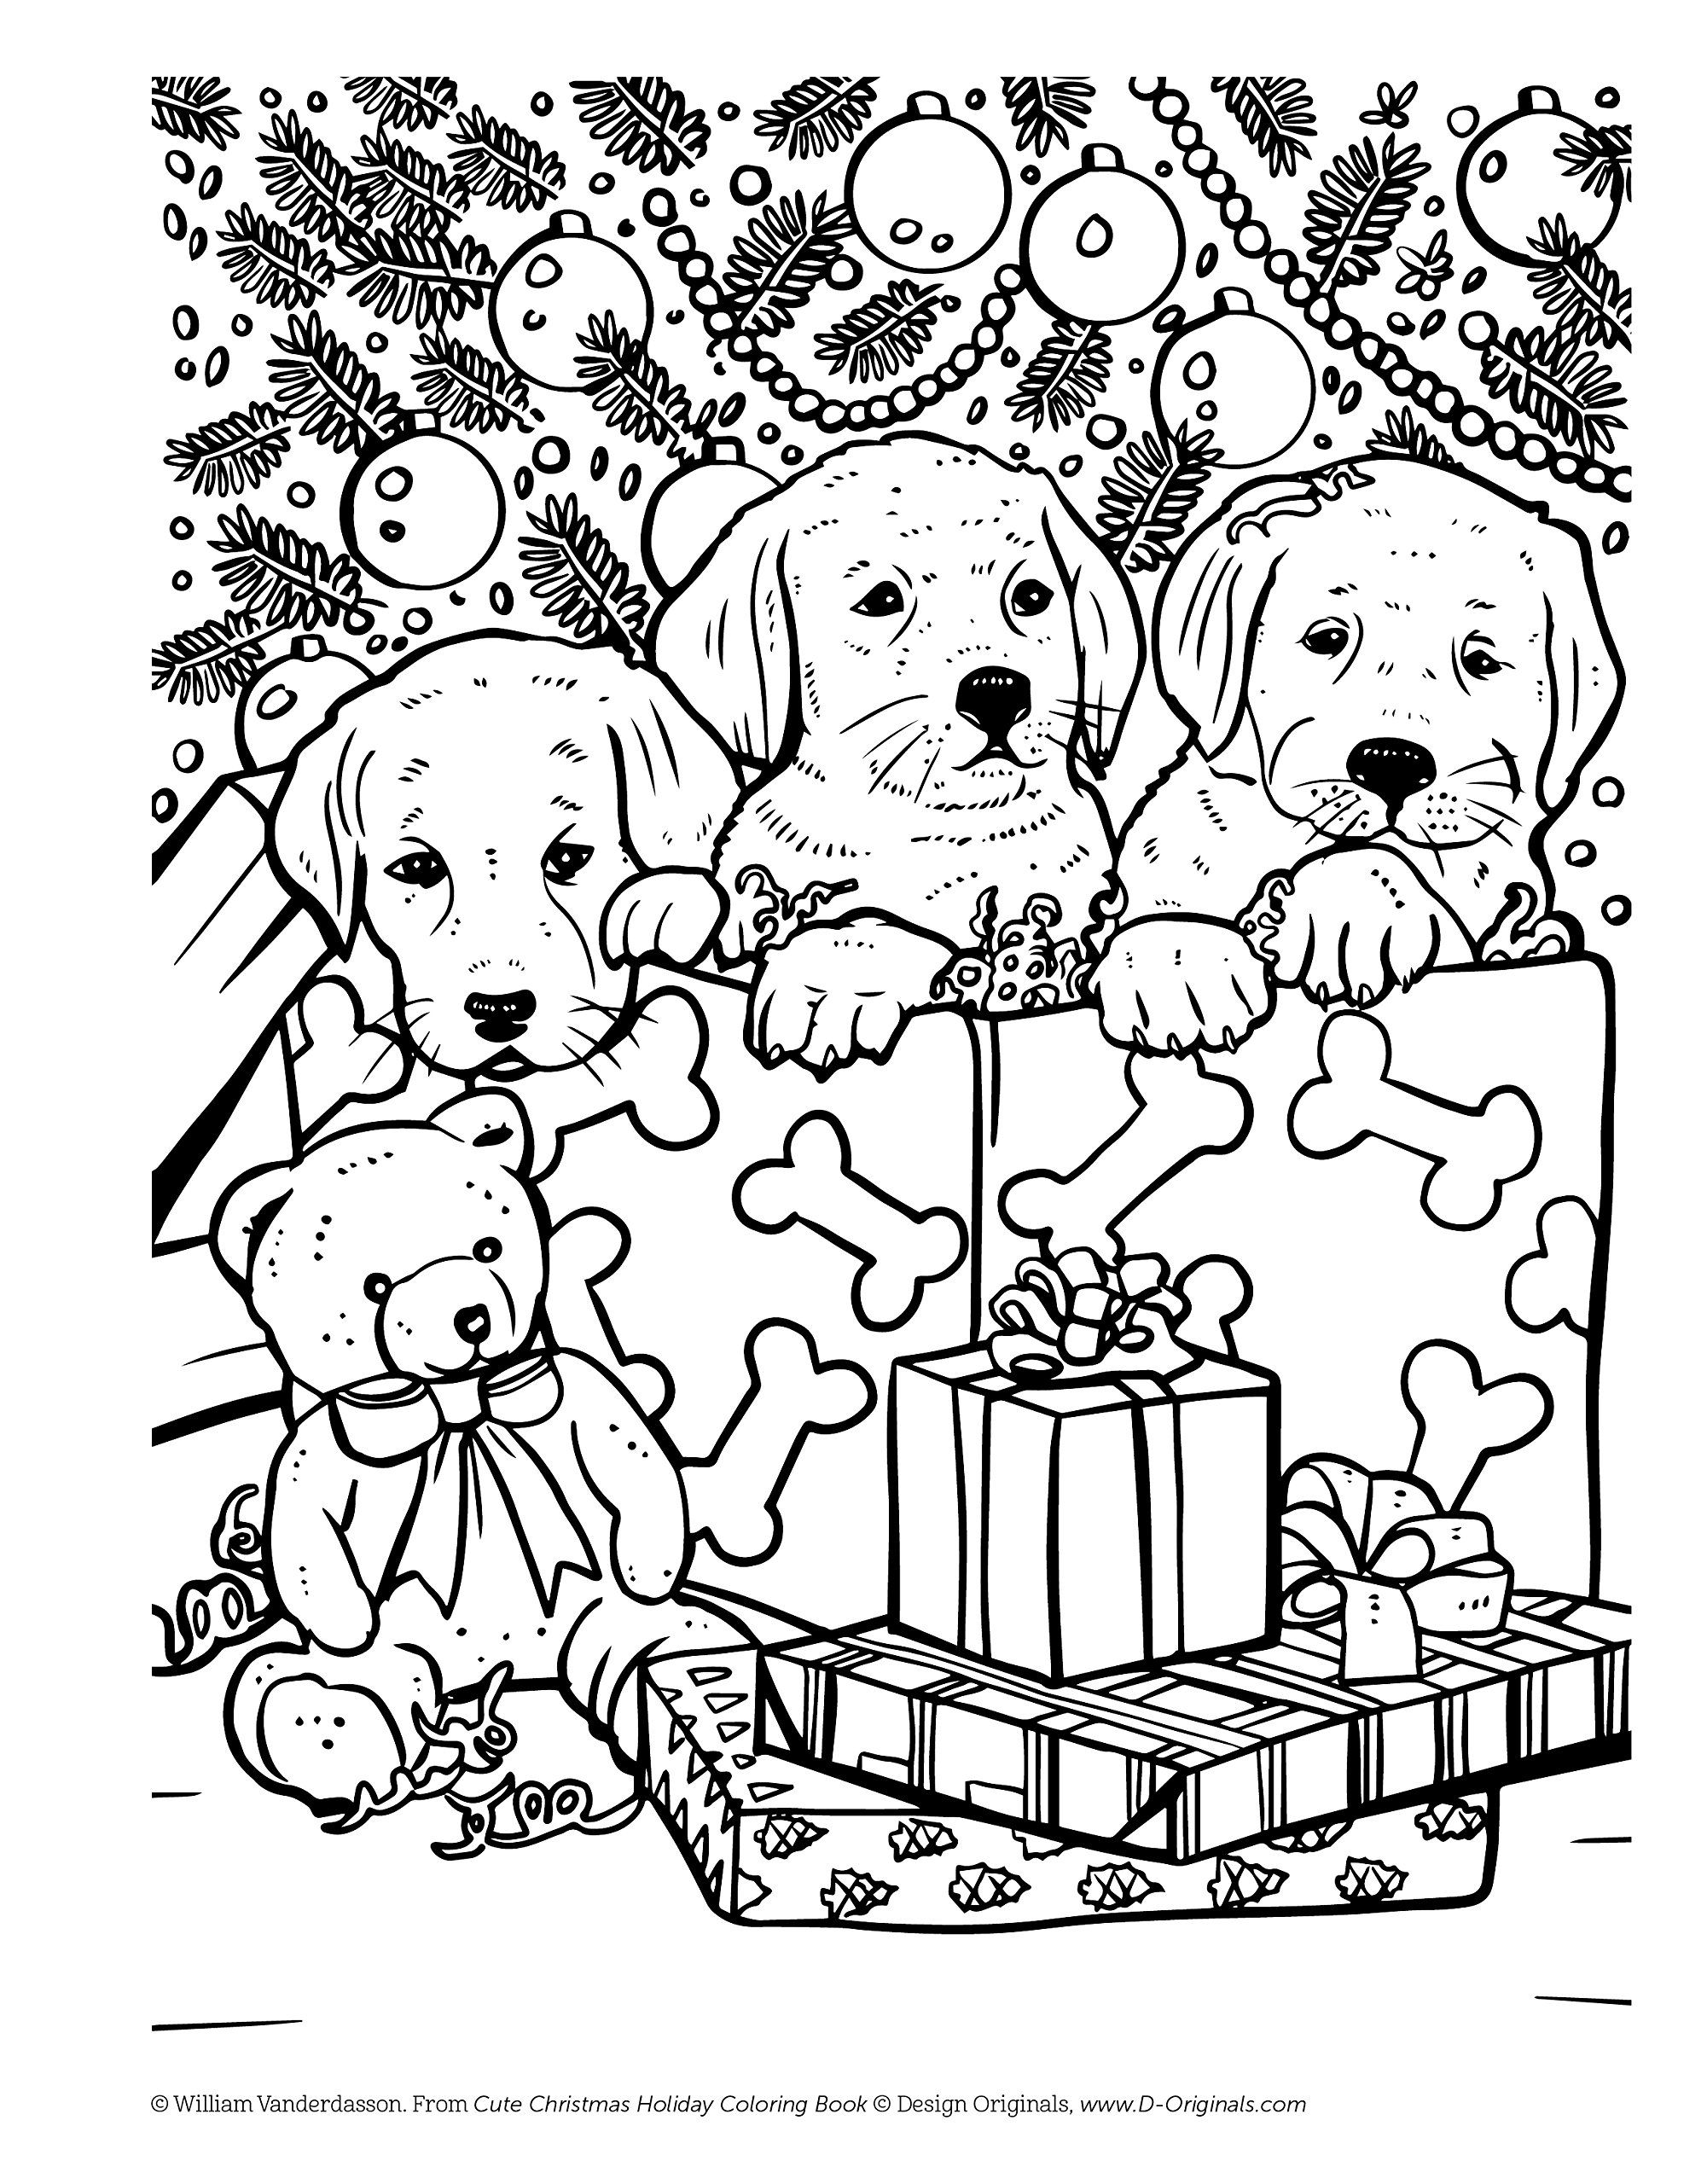 Cute Christmas Holiday Coloring Book For Animal Lovers Holiday Coloring Book Puppy Coloring Pages Christmas Coloring Sheets